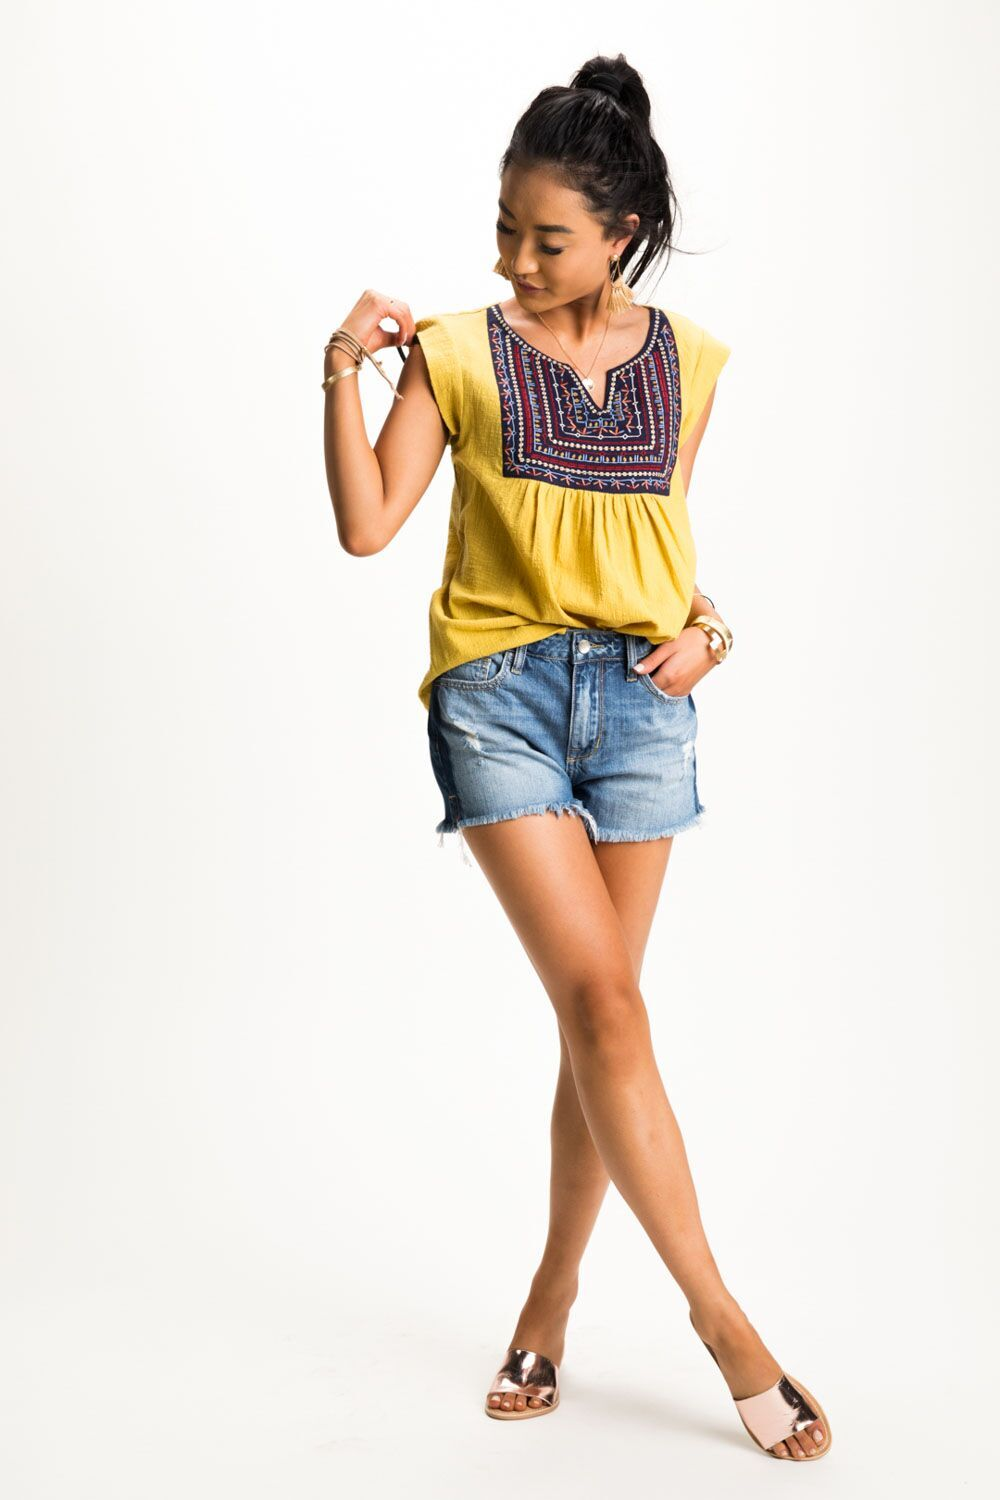 In the Sun Embroidered Top-FINAL SALE